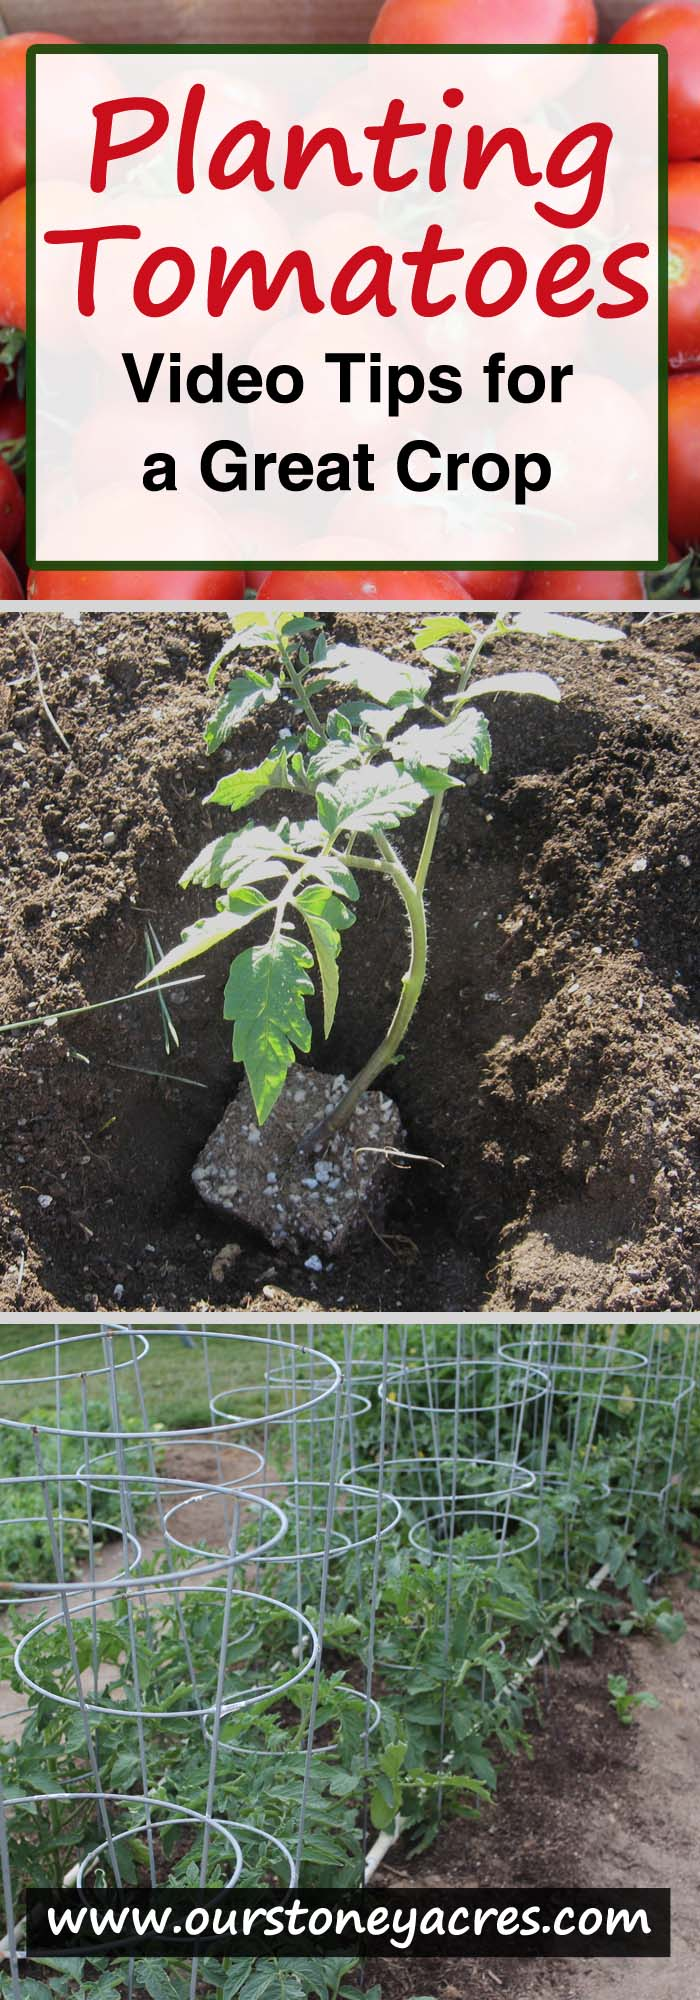 Planting Tomatoes - Video Post